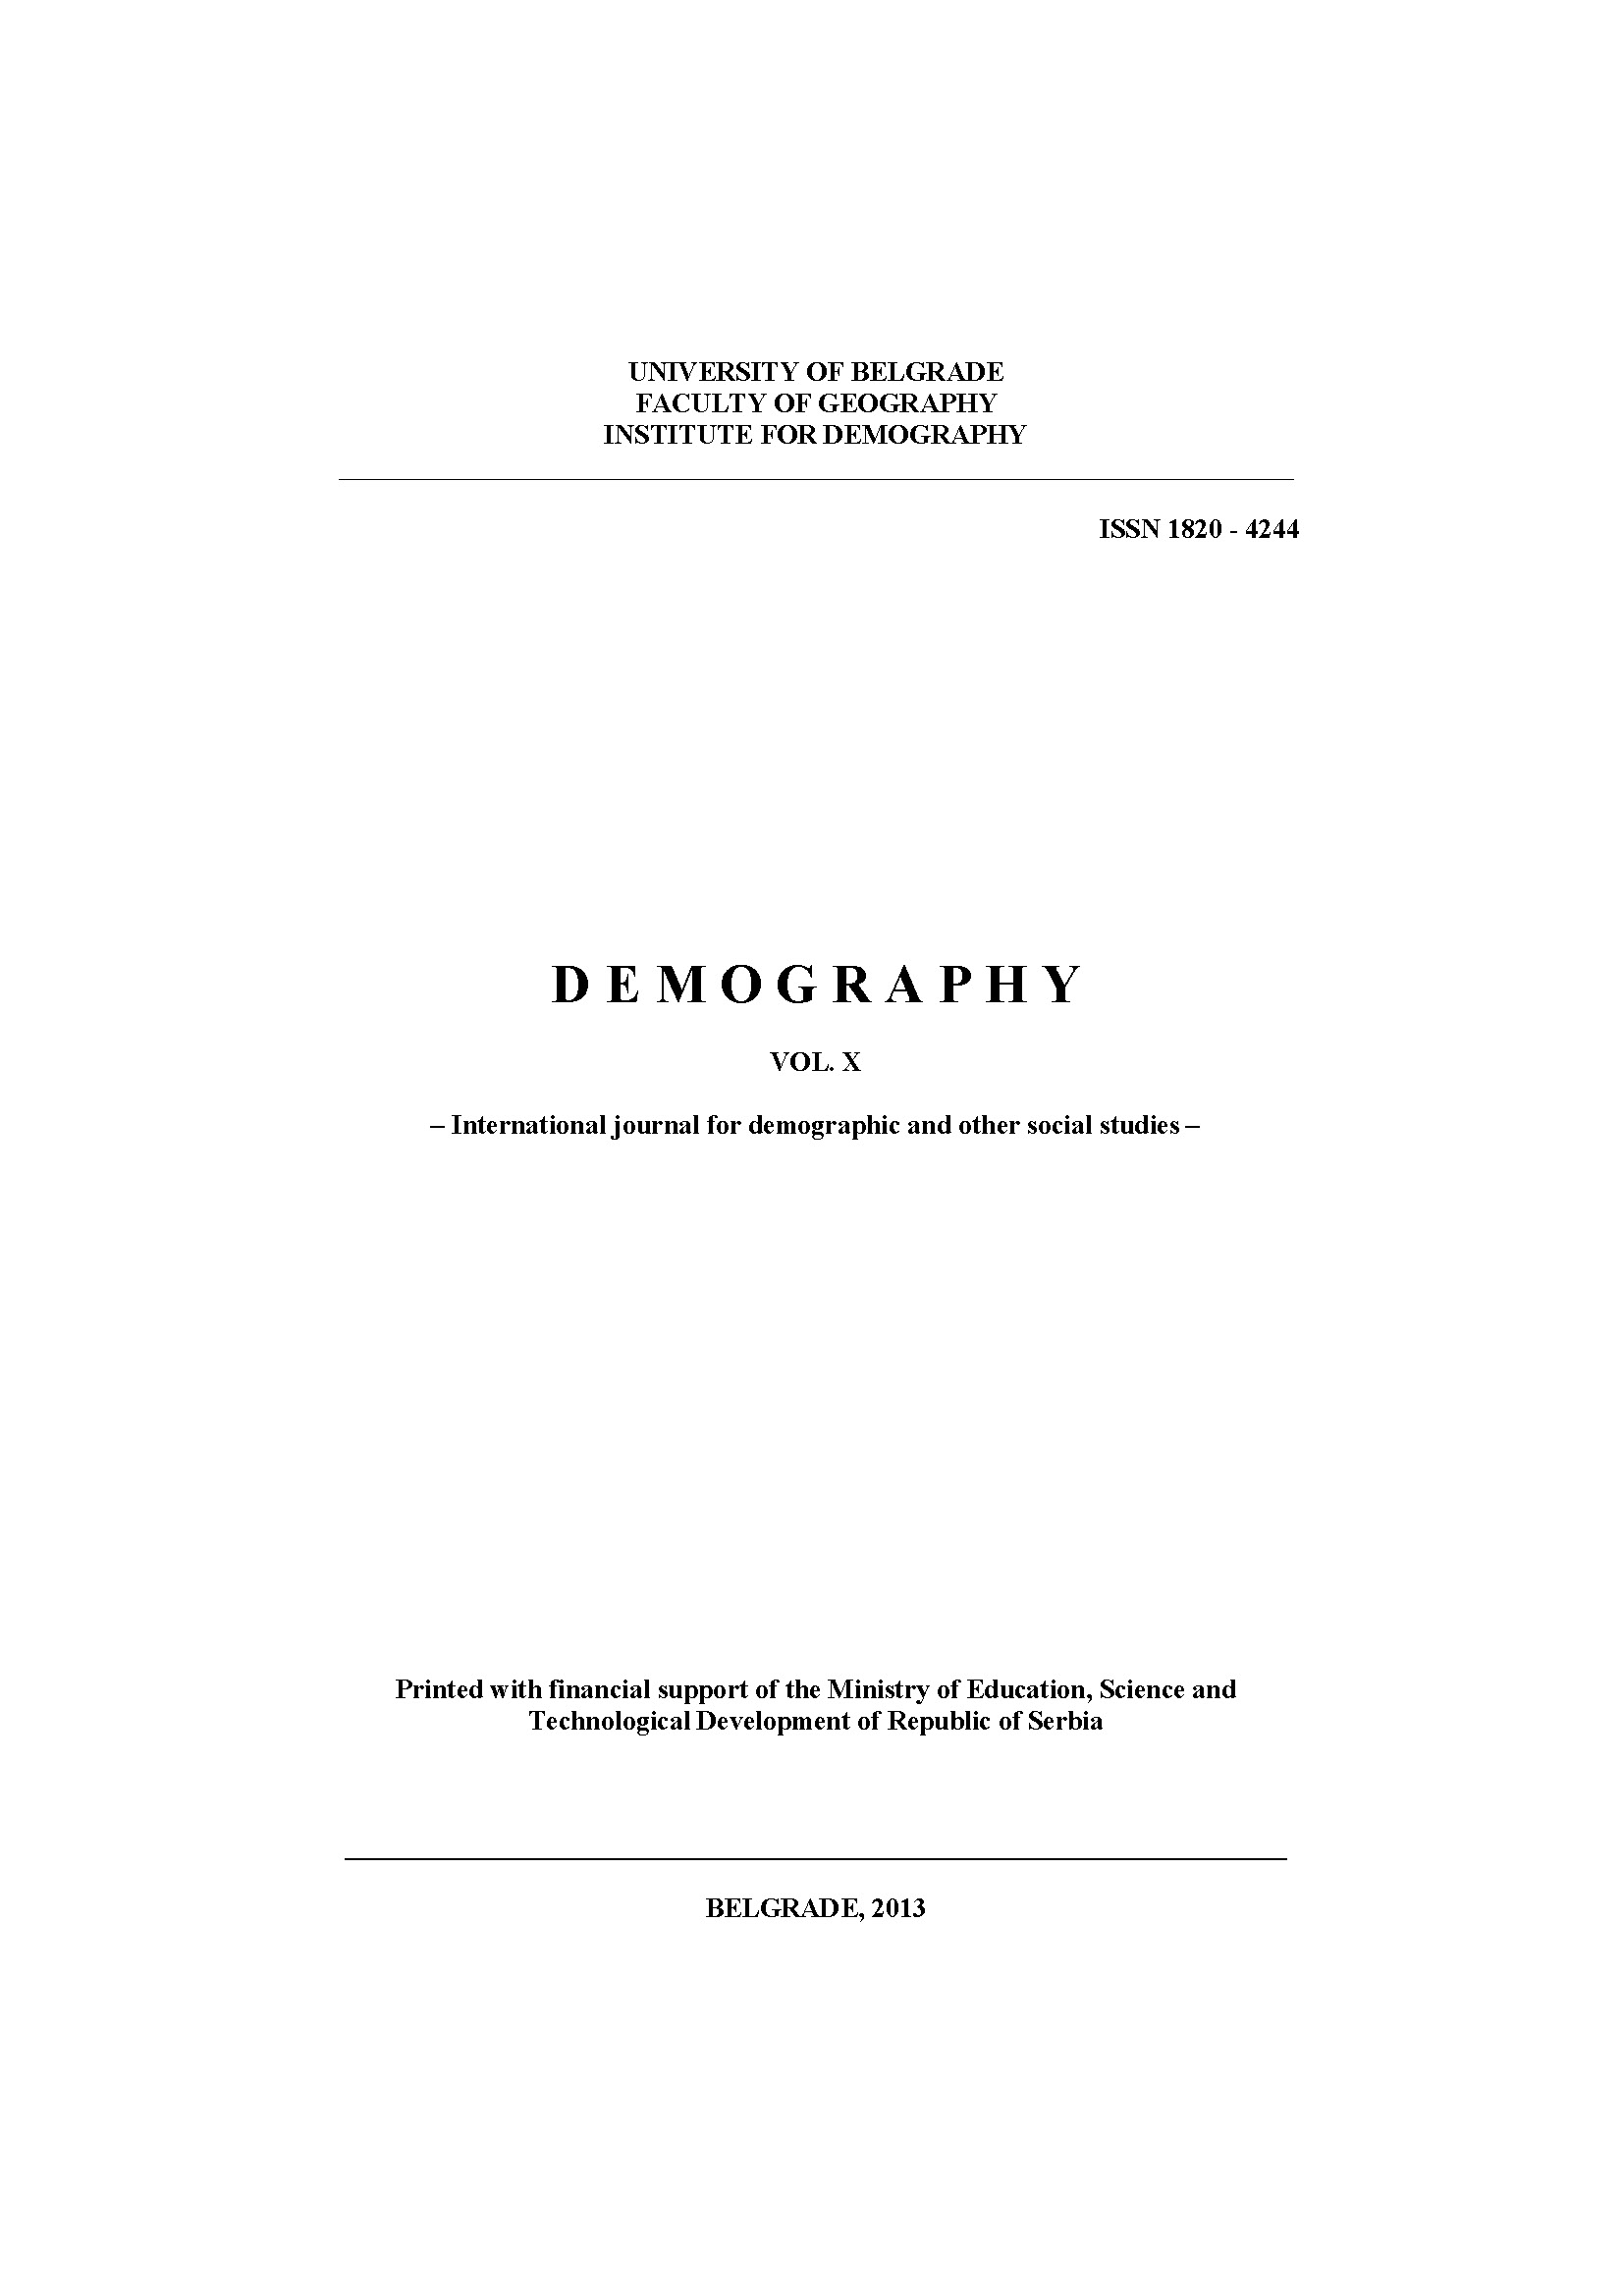 Demographics of France - Historical Analysis and Contemporary State Cover Image